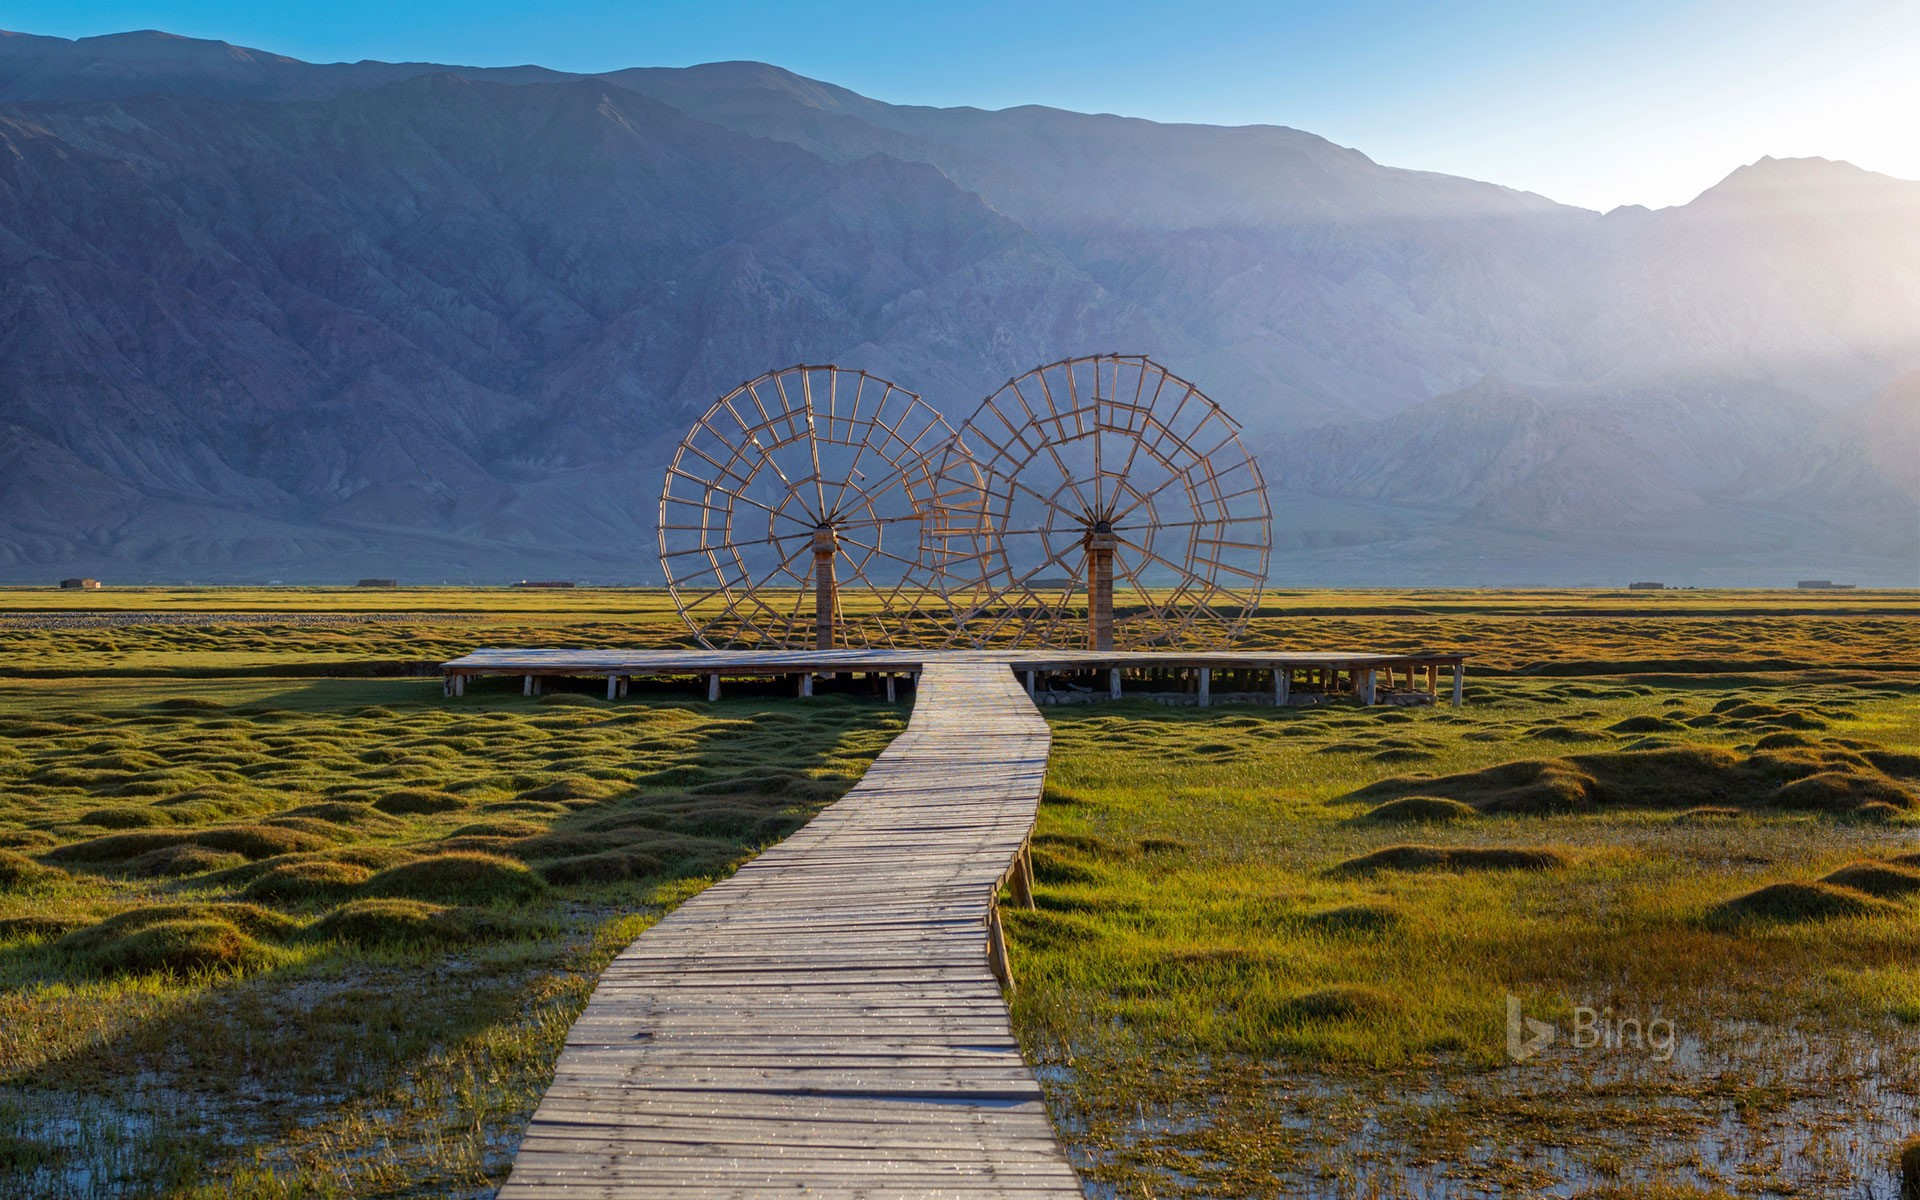 Water wheels in the Tashkurgan Grassland, Tashkurgan Tajik Autonomous County, Xinjiang, China